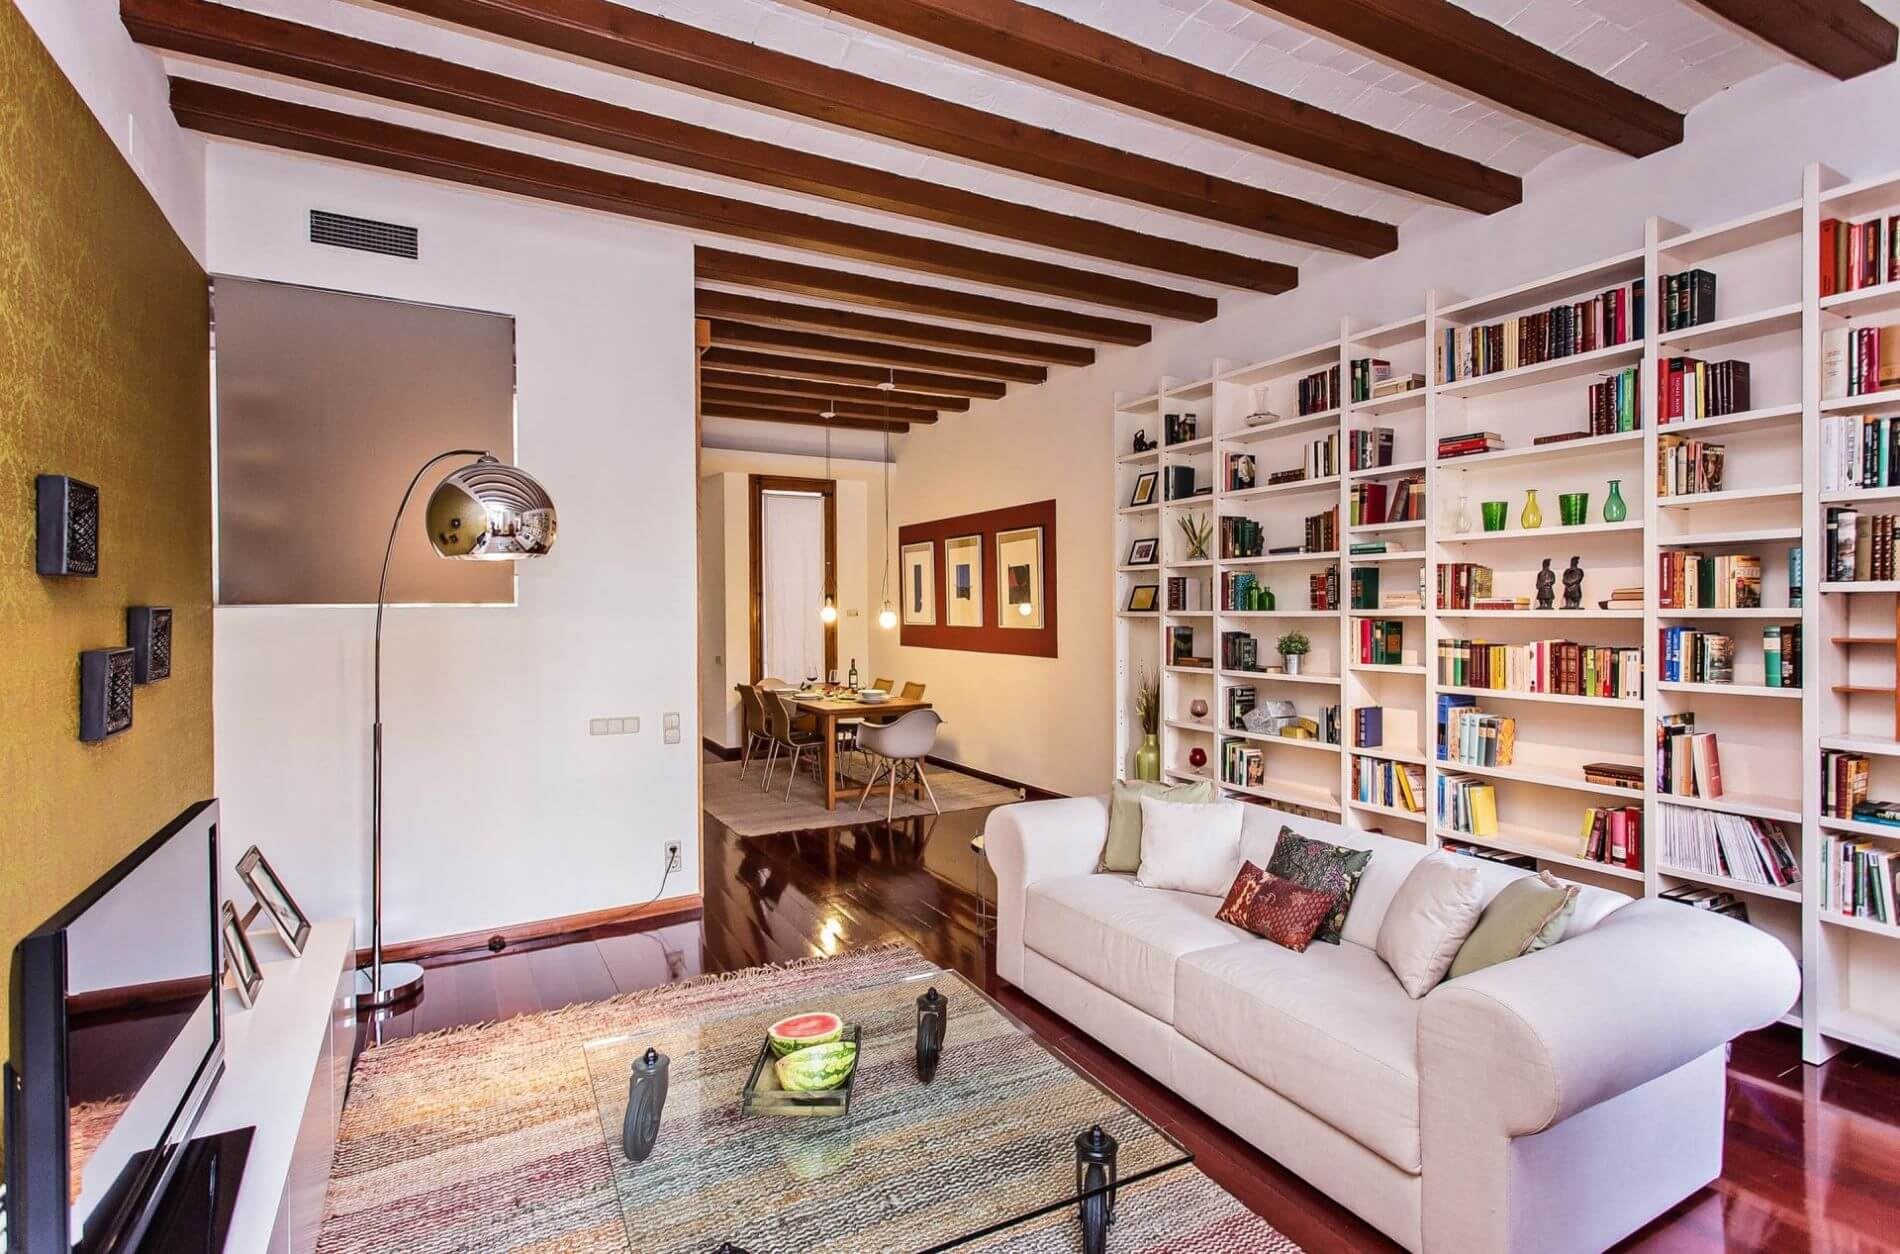 Furnished property in Eixample perfect for families